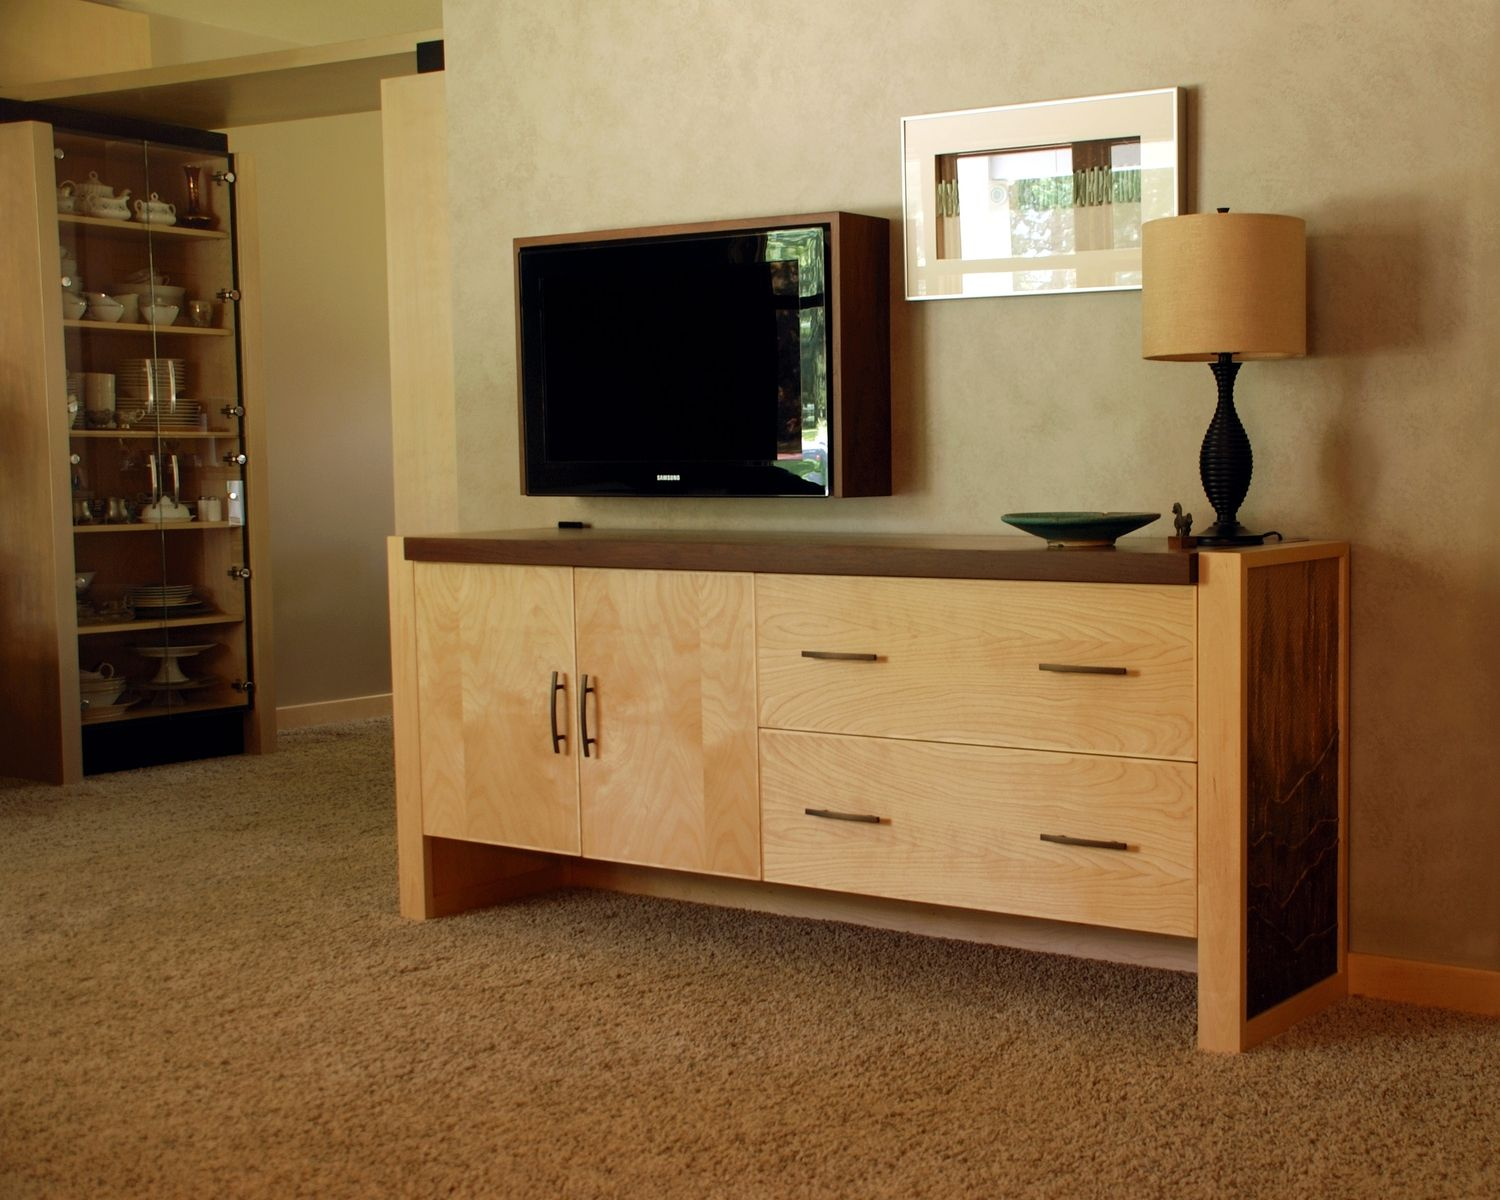 custom credenza w tv surround by third street studios. Black Bedroom Furniture Sets. Home Design Ideas